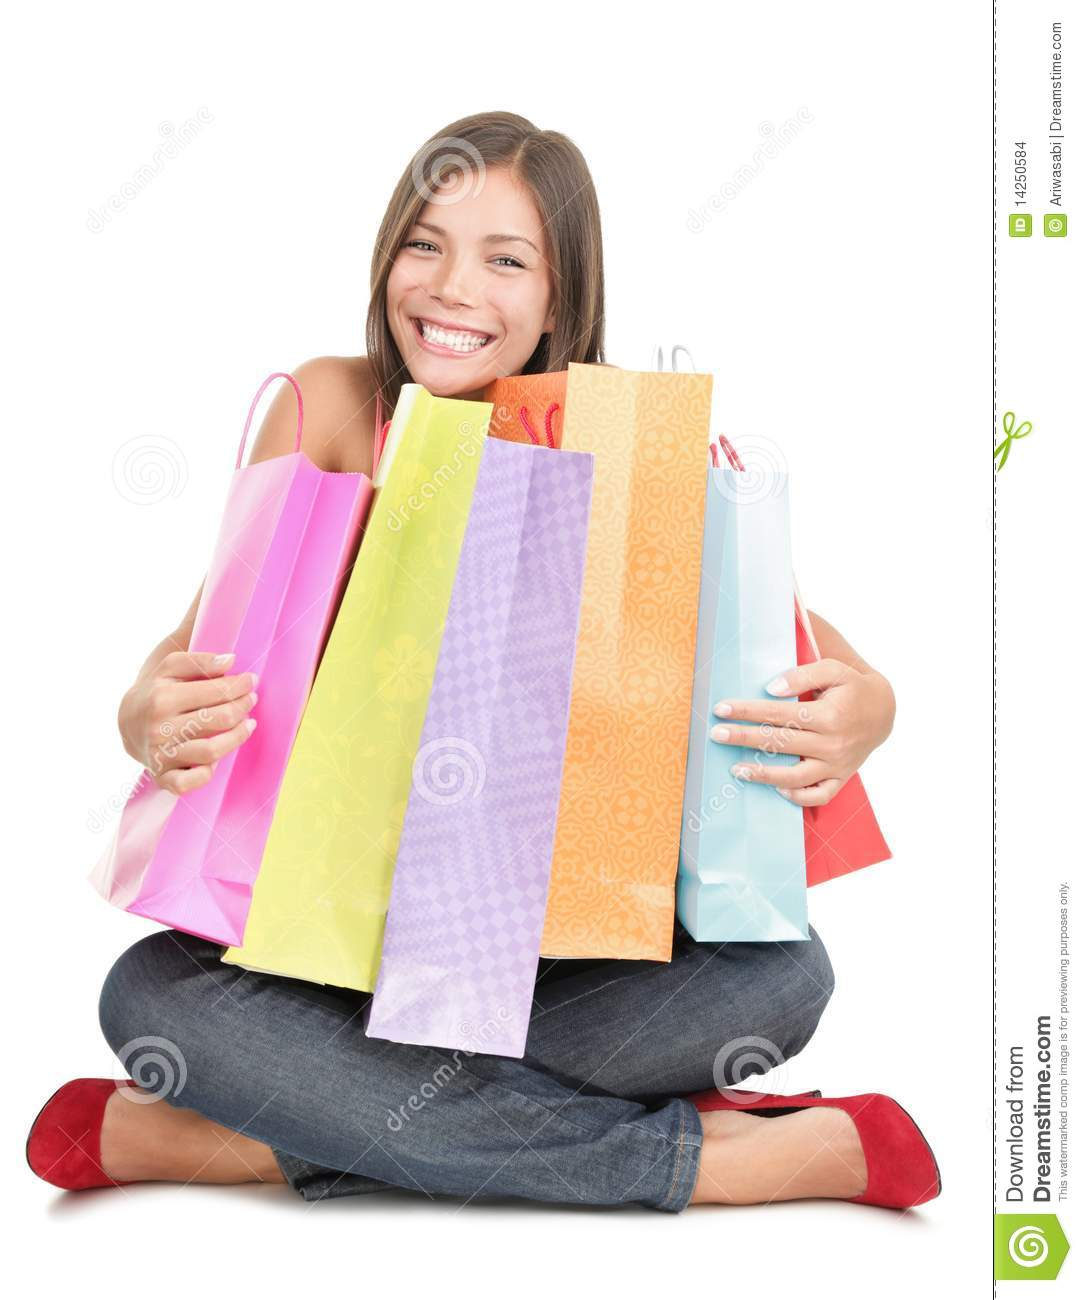 Shopping Woman Holding Shopping Bags Stock Images - Image: 14250584